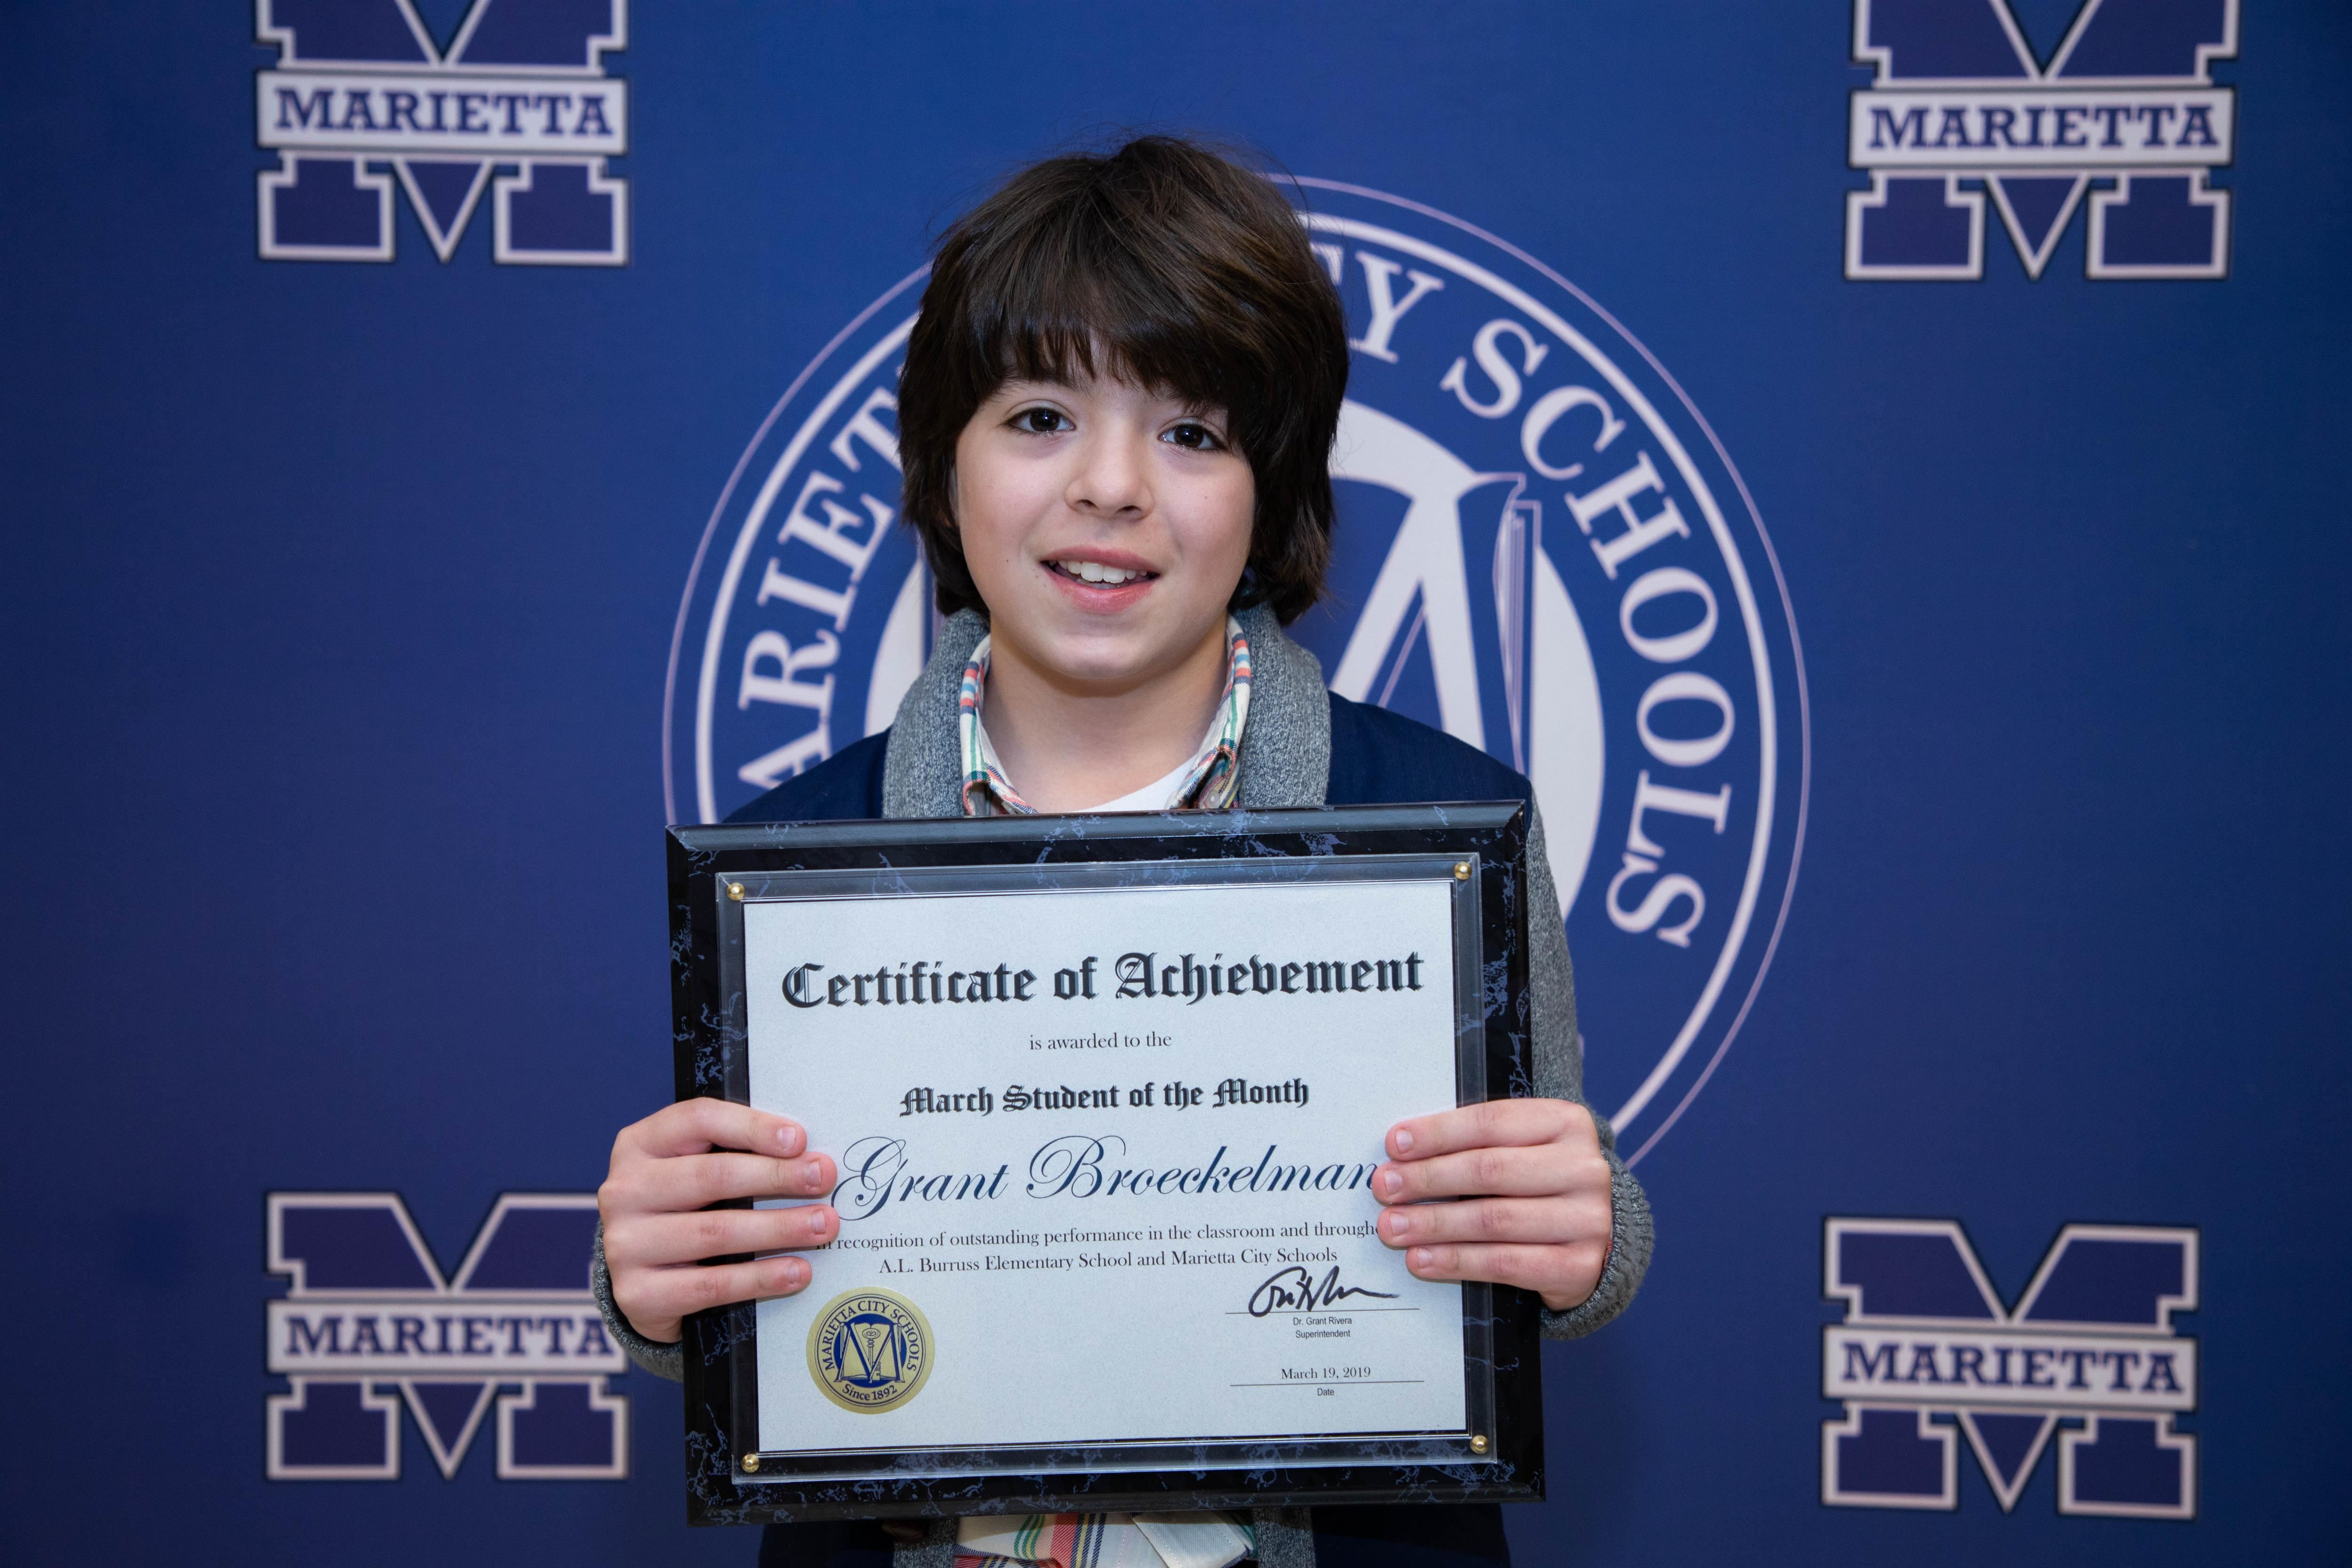 Grant Broeckelman: March Student of the Month